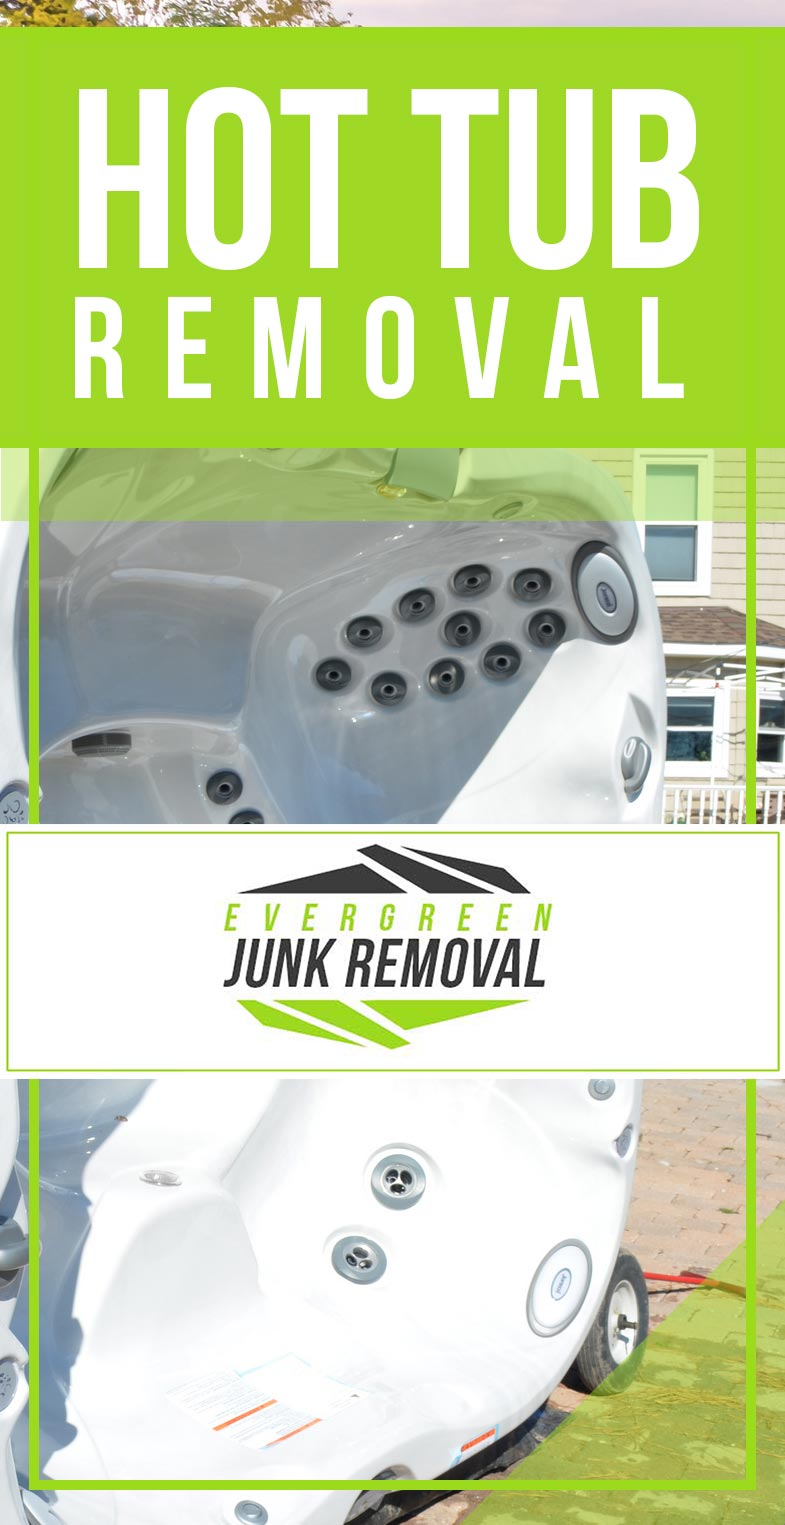 Lake Forest Hot Tub Removal